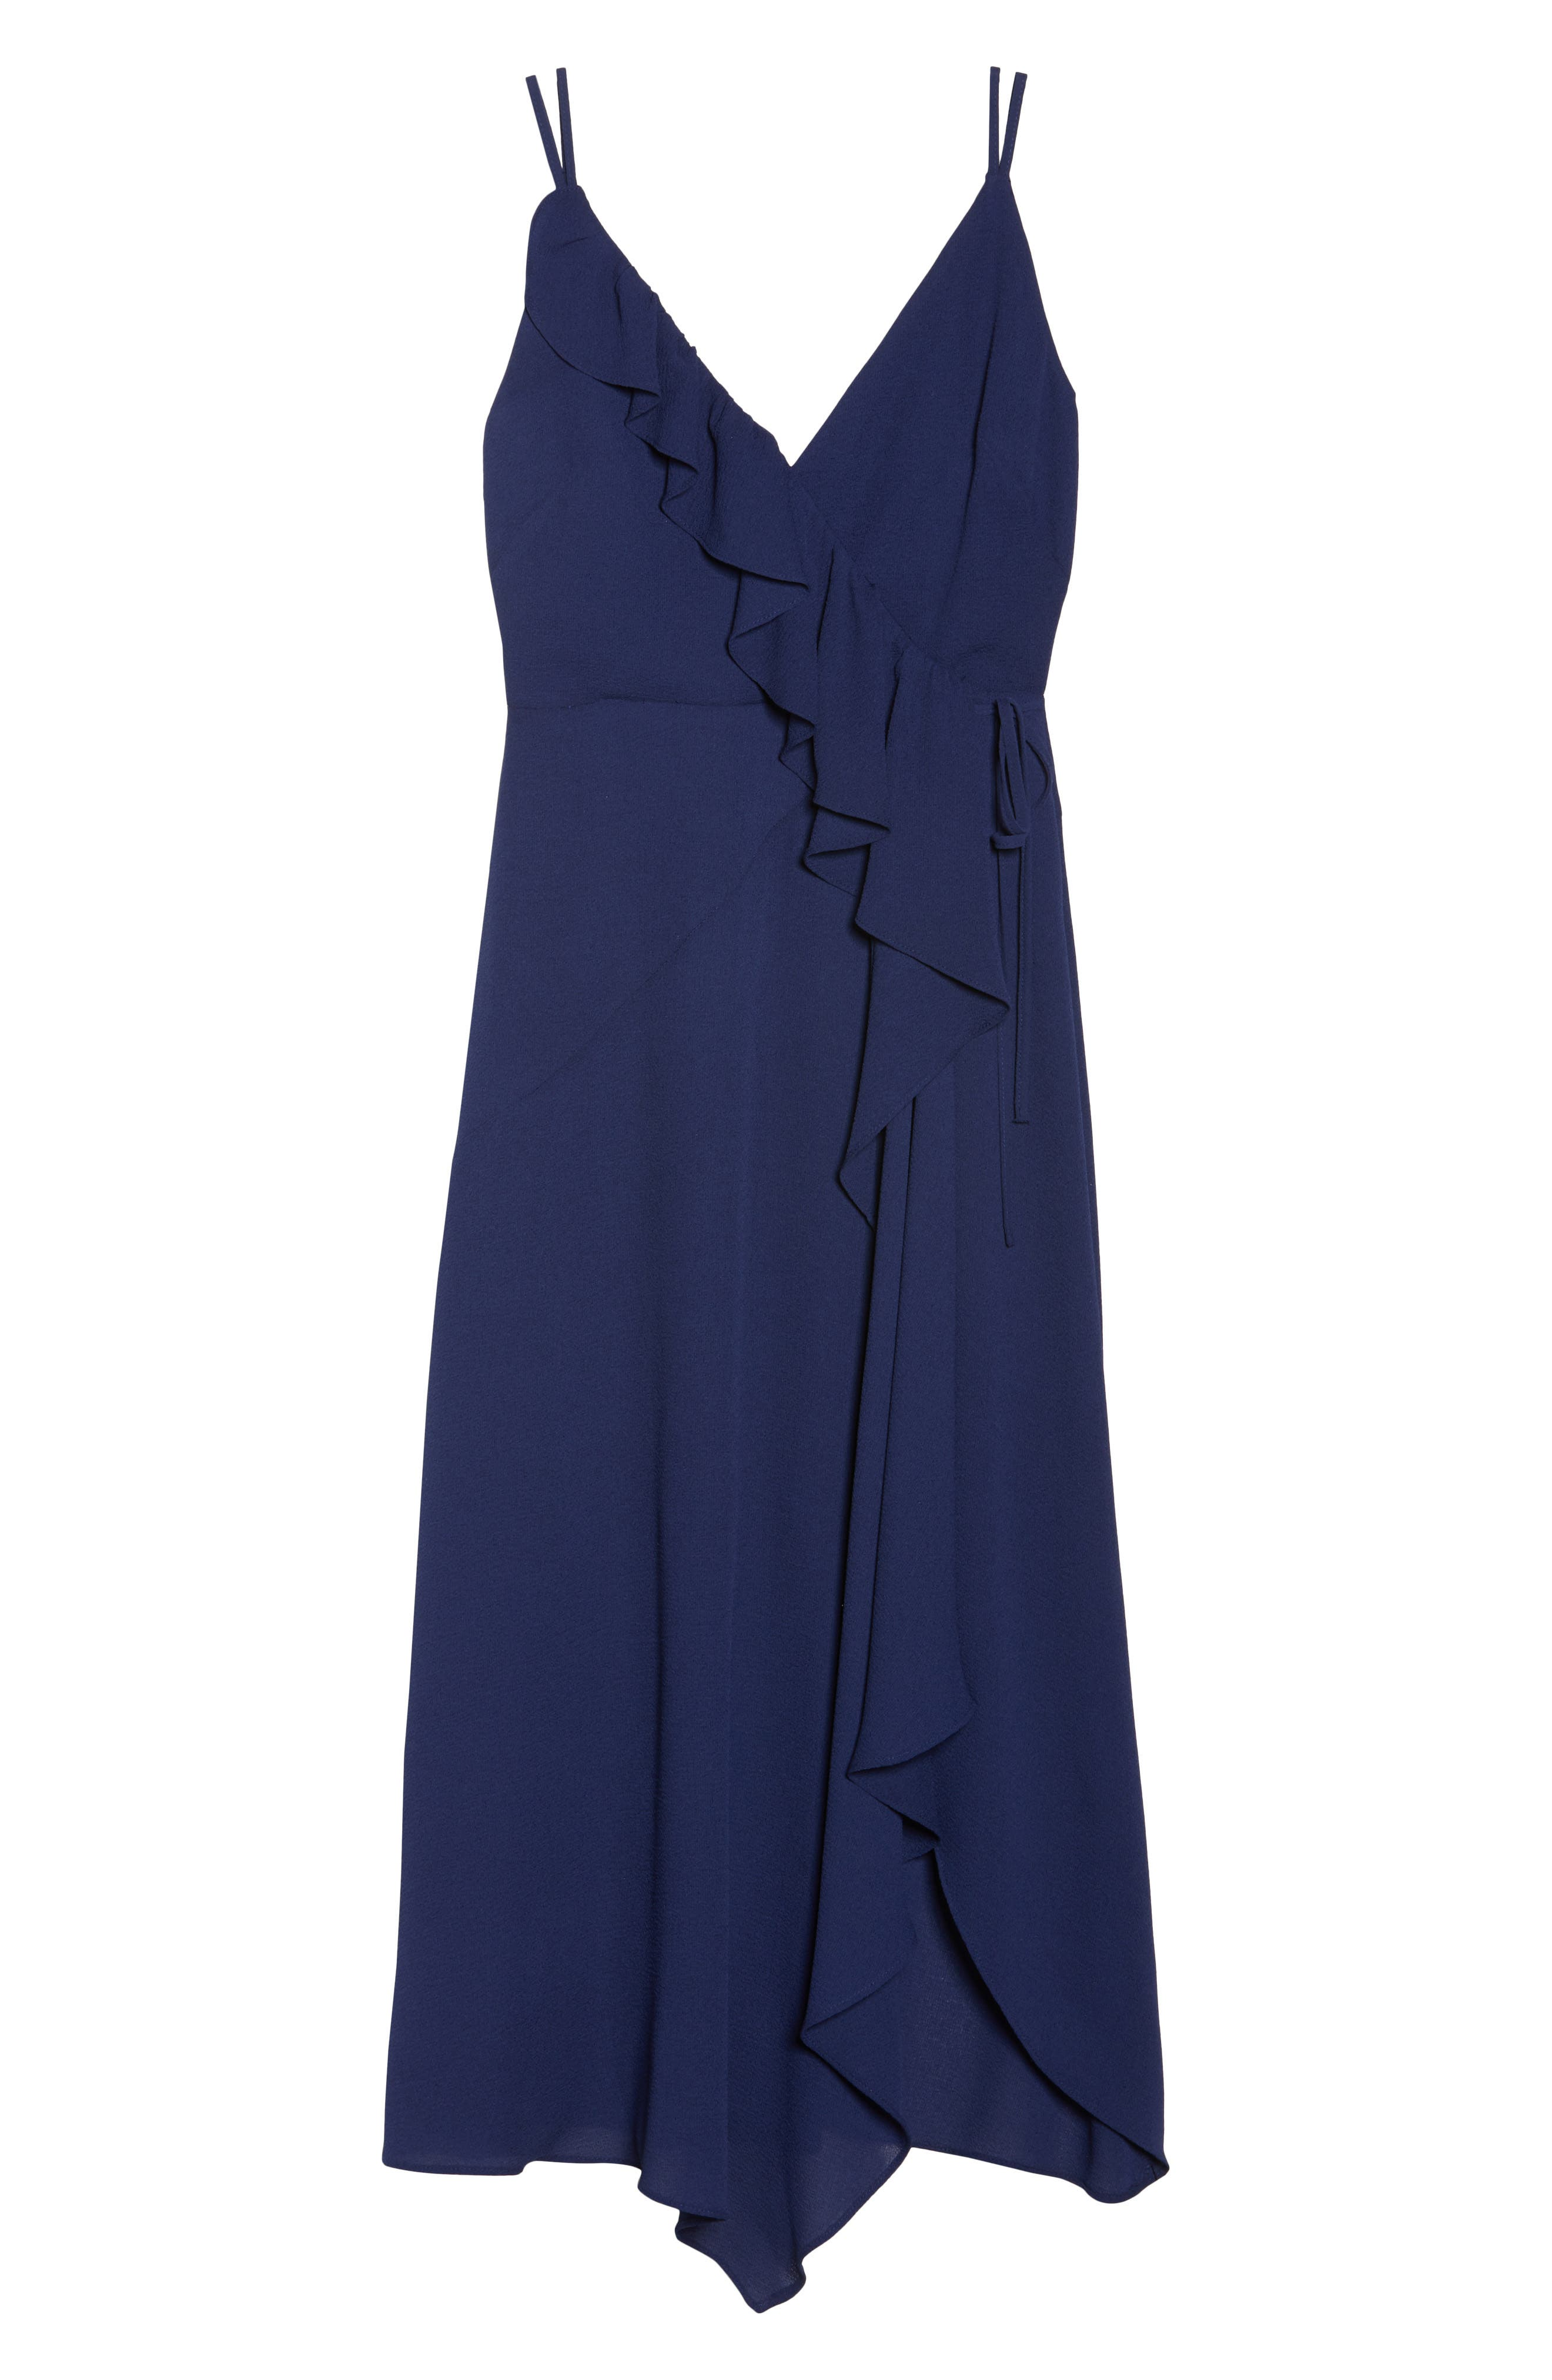 Georgette Faux Wrap Dress,                             Alternate thumbnail 7, color,                             Navy